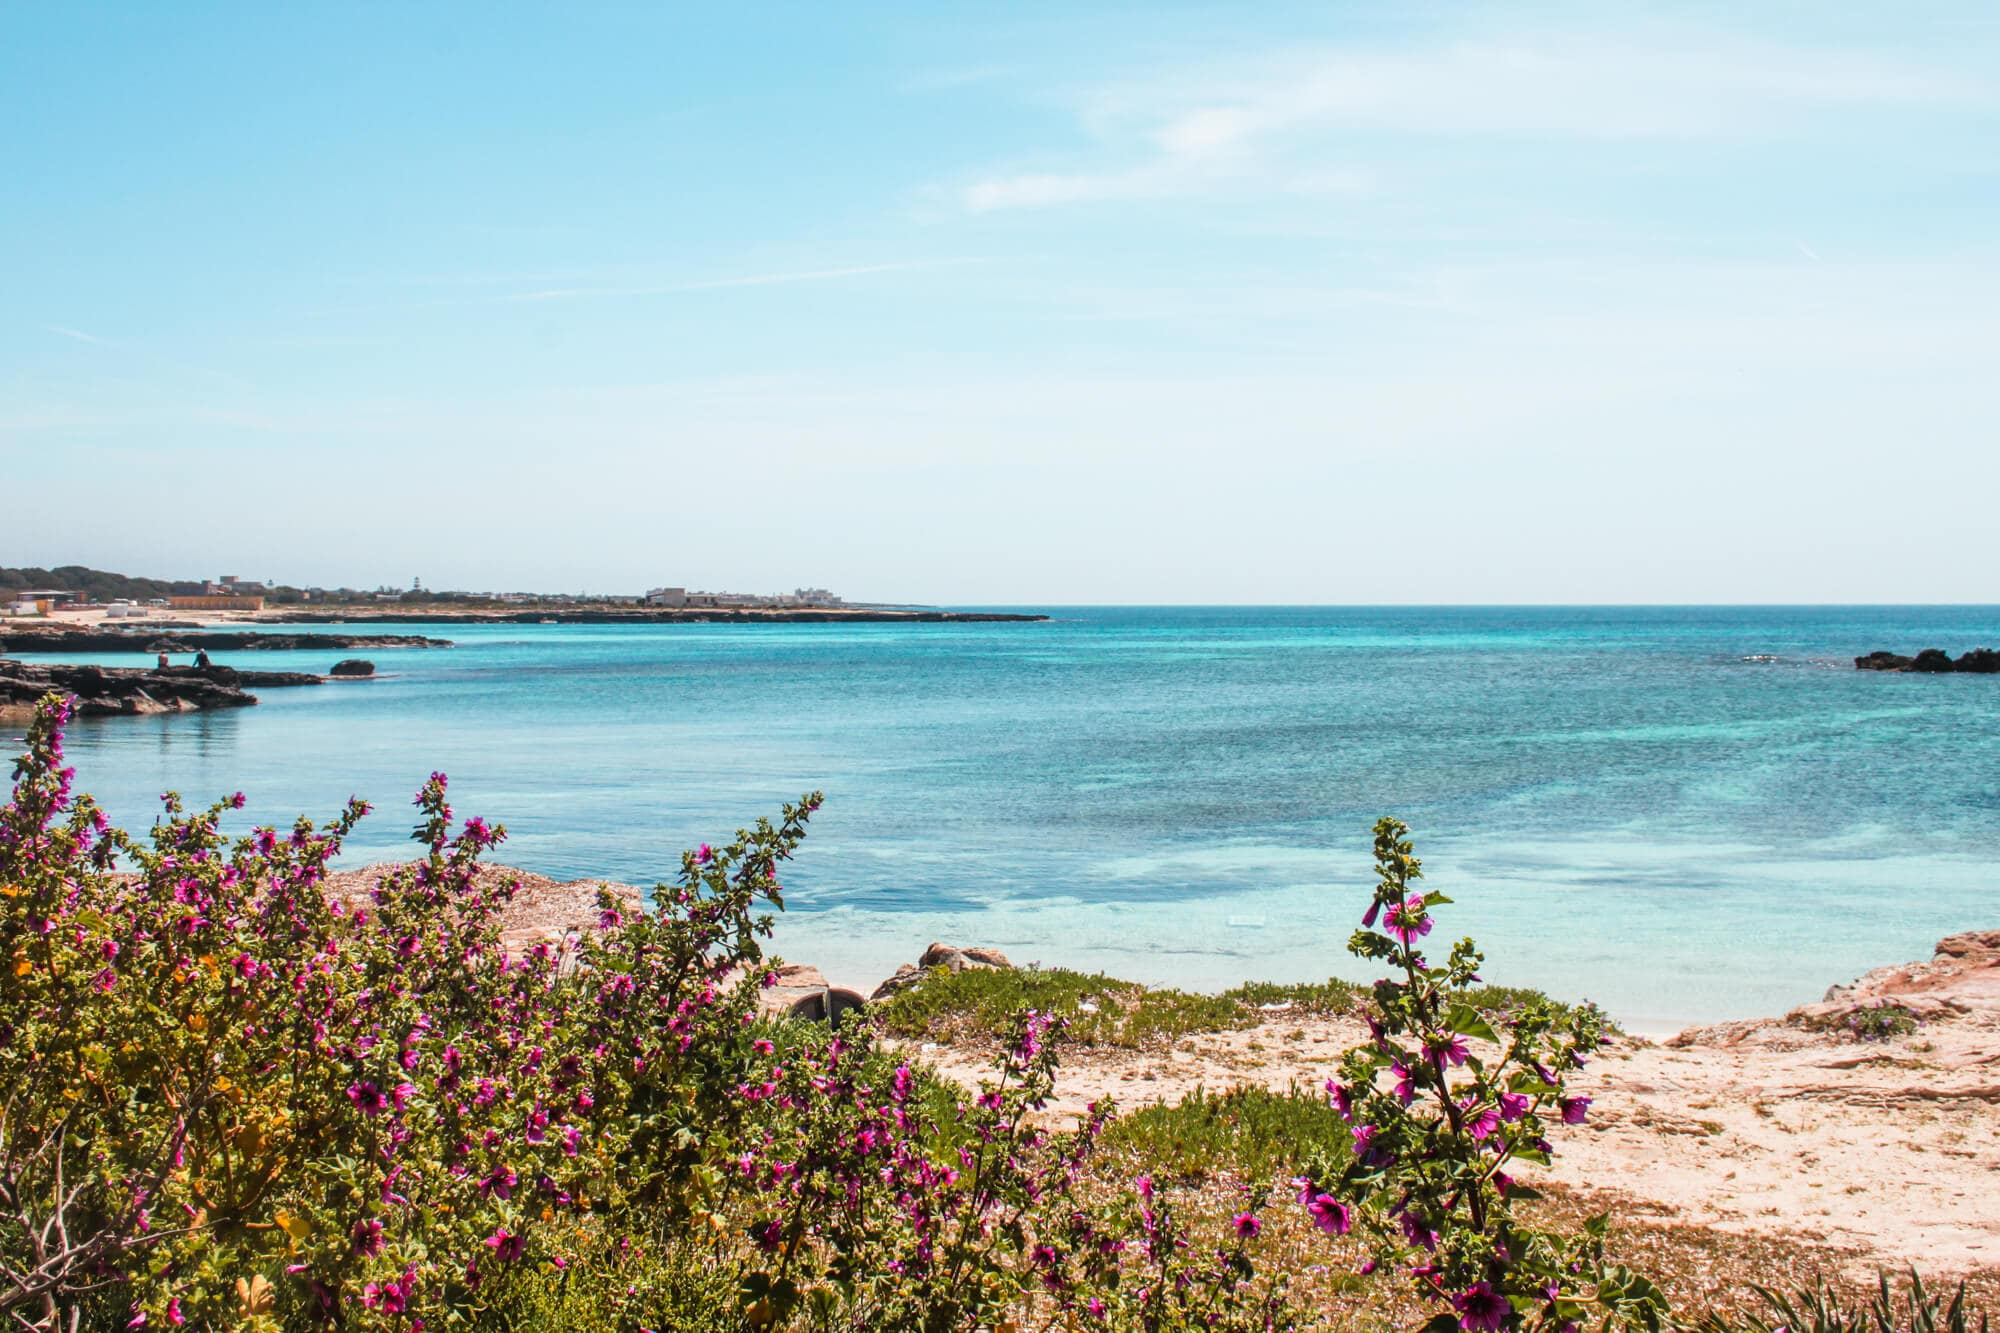 Favignana, an incredible island outside Sicily in Italy - The Maldives of Europe